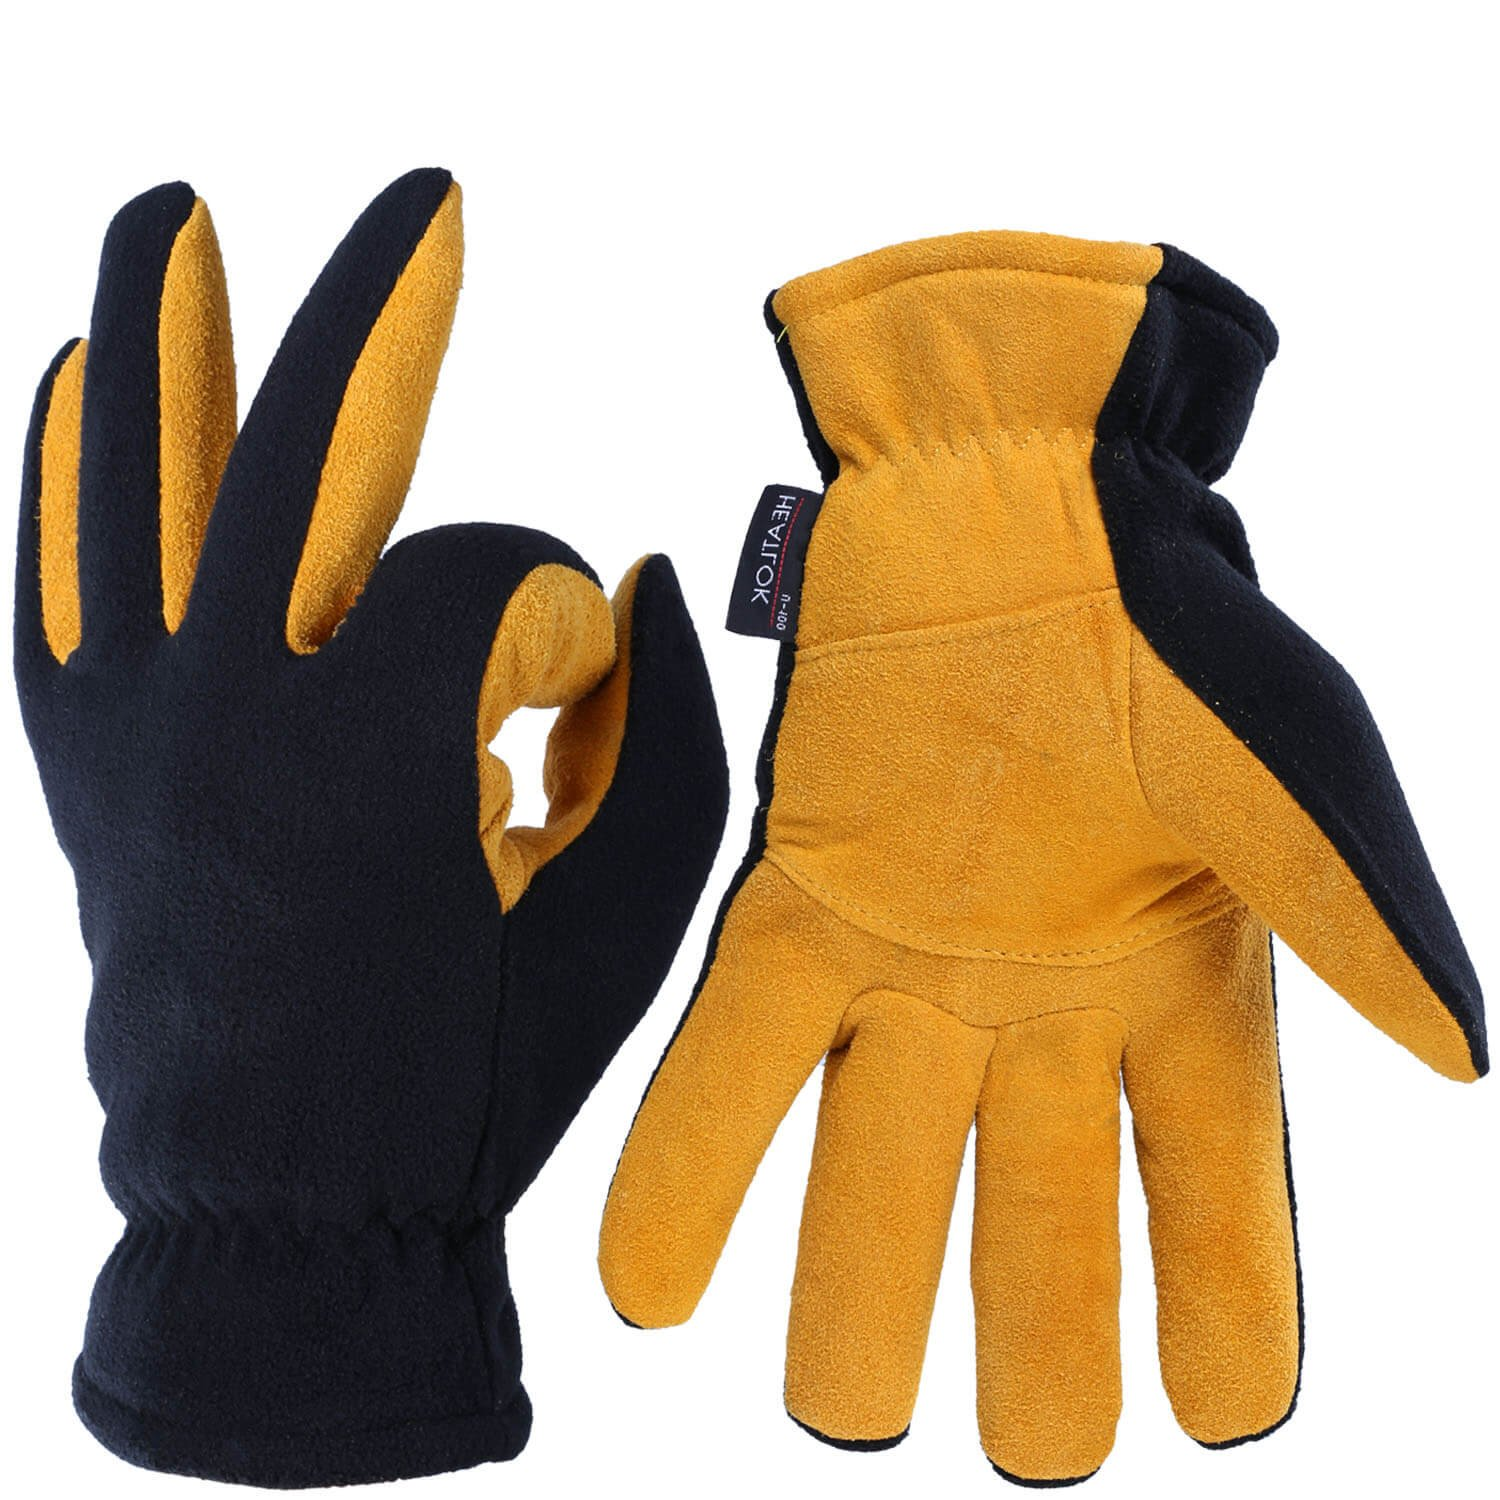 OZERO Deerskin Suede Leather Palm and Polar Fleece Back with Heatlok Insulated Cotton Layer Thermal Gloves, X-Large - Tan-Black